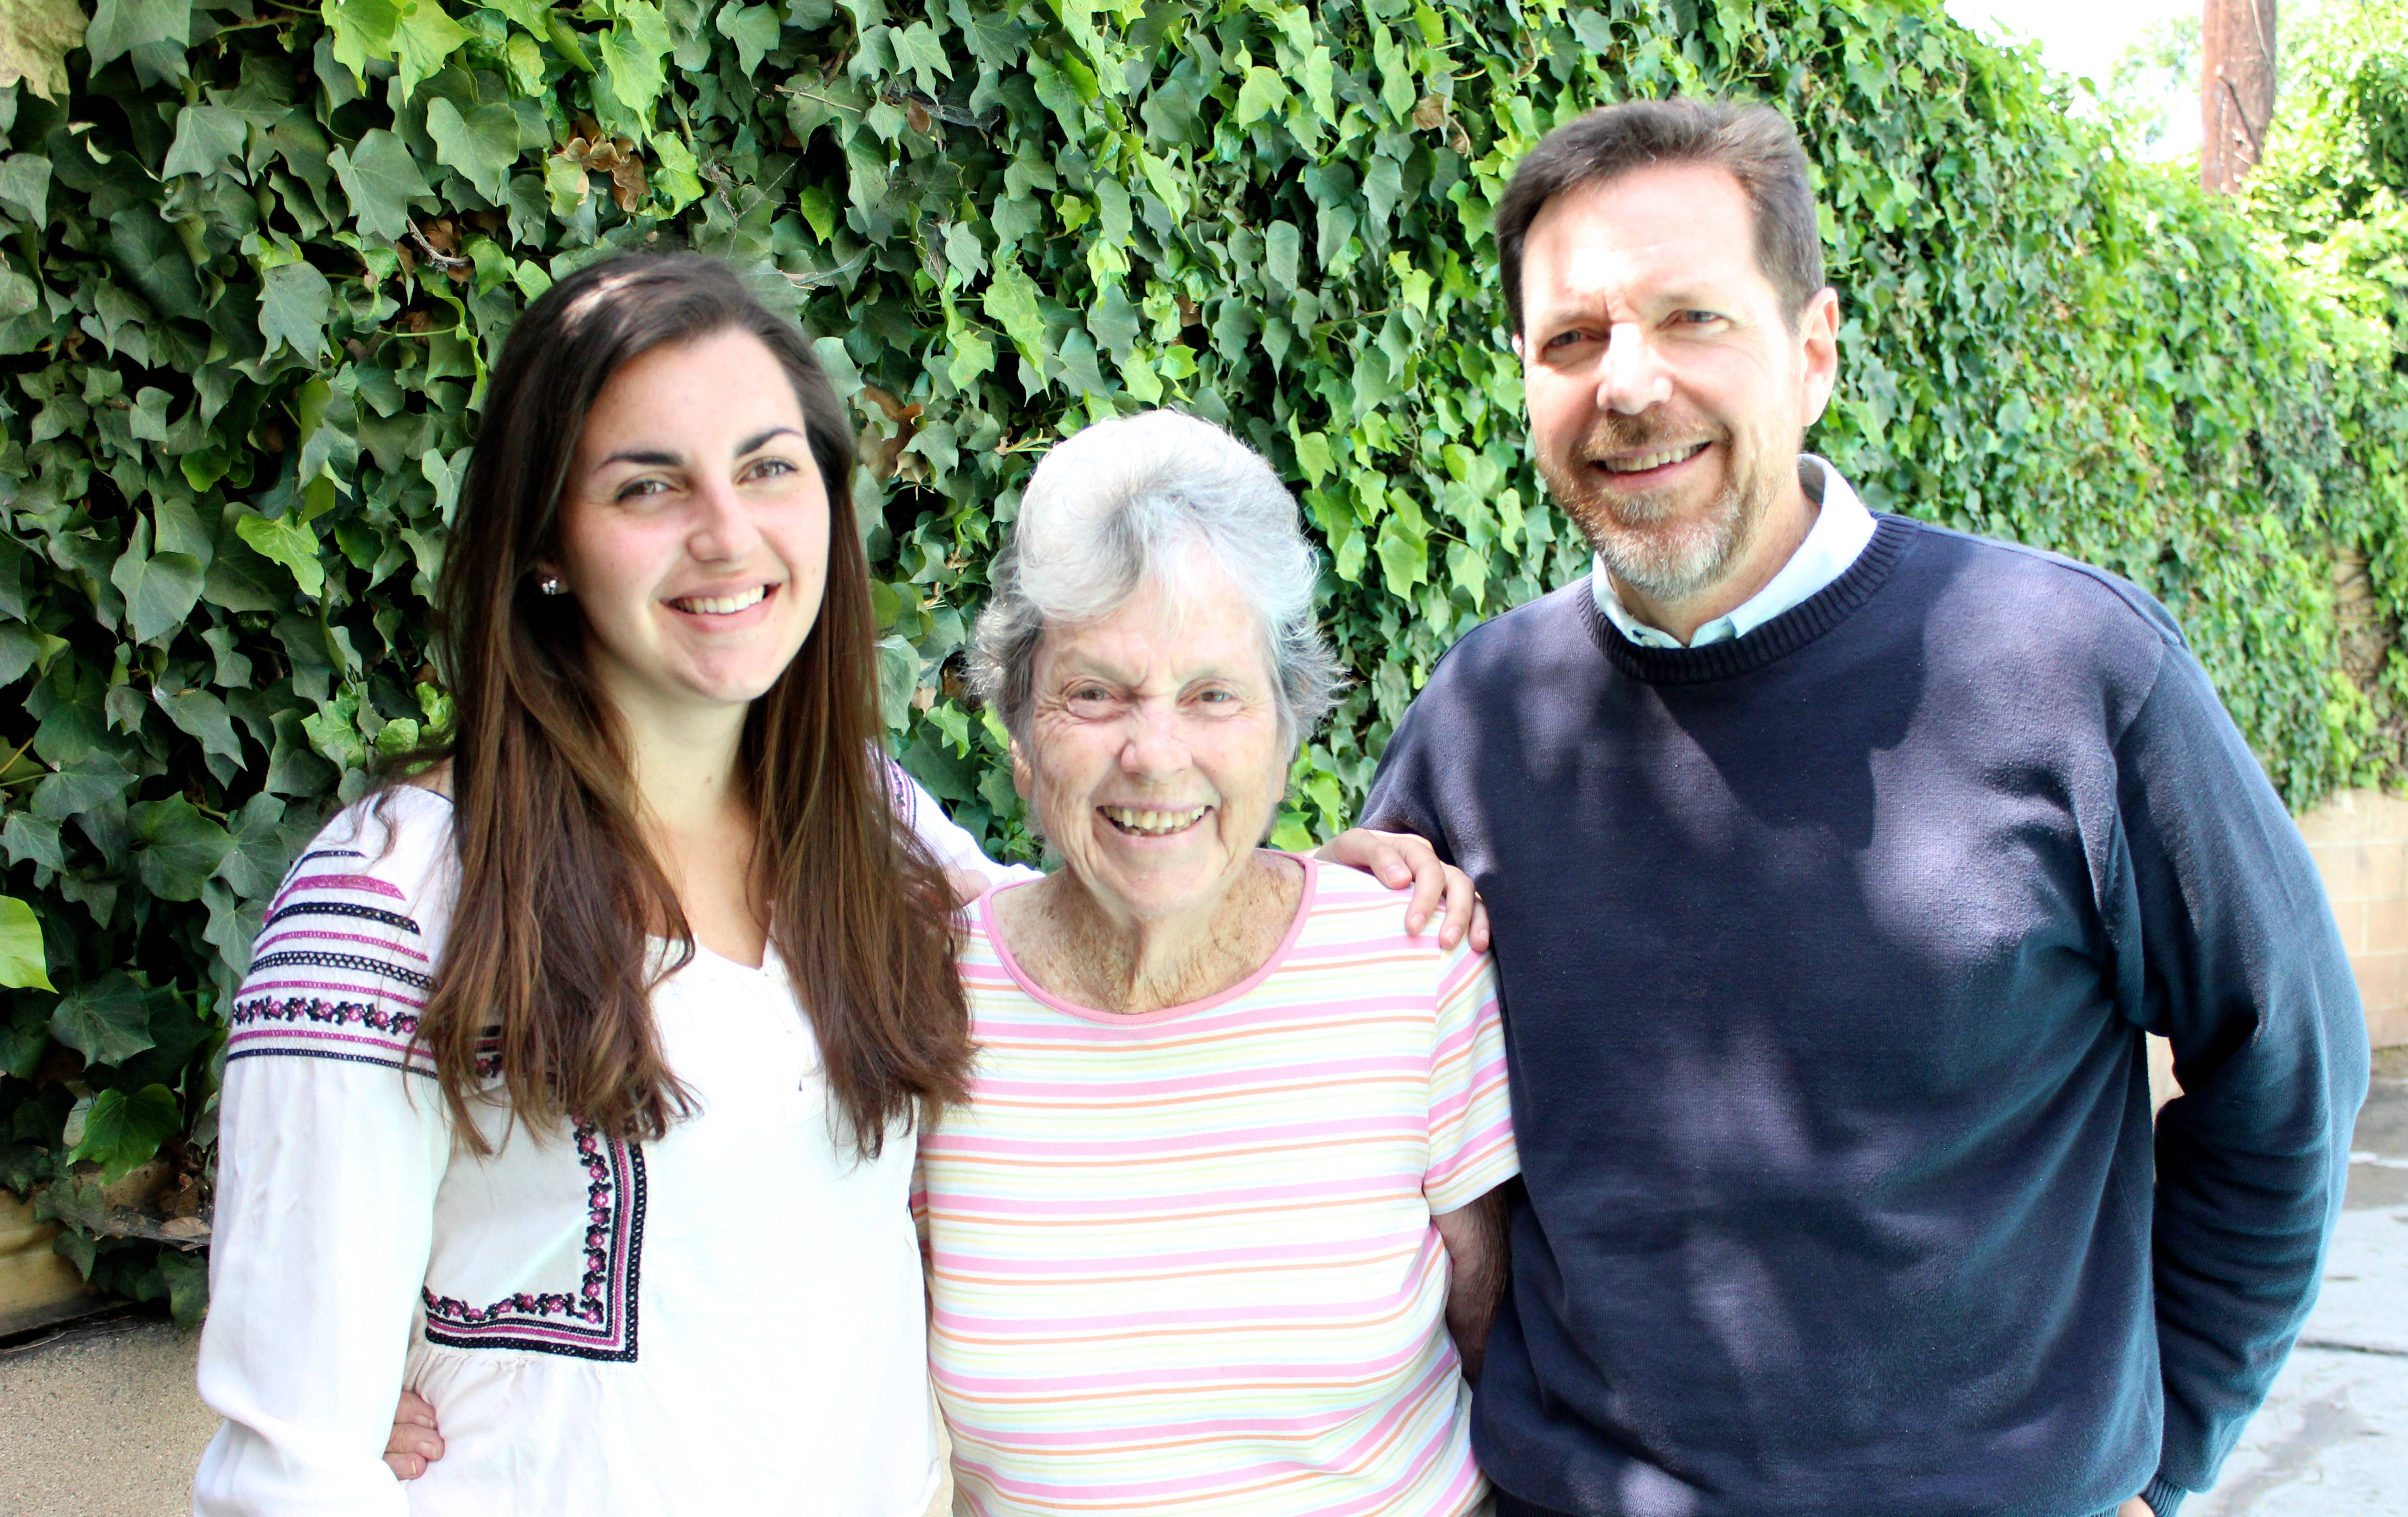 Marina with her grandmother Angela and father.